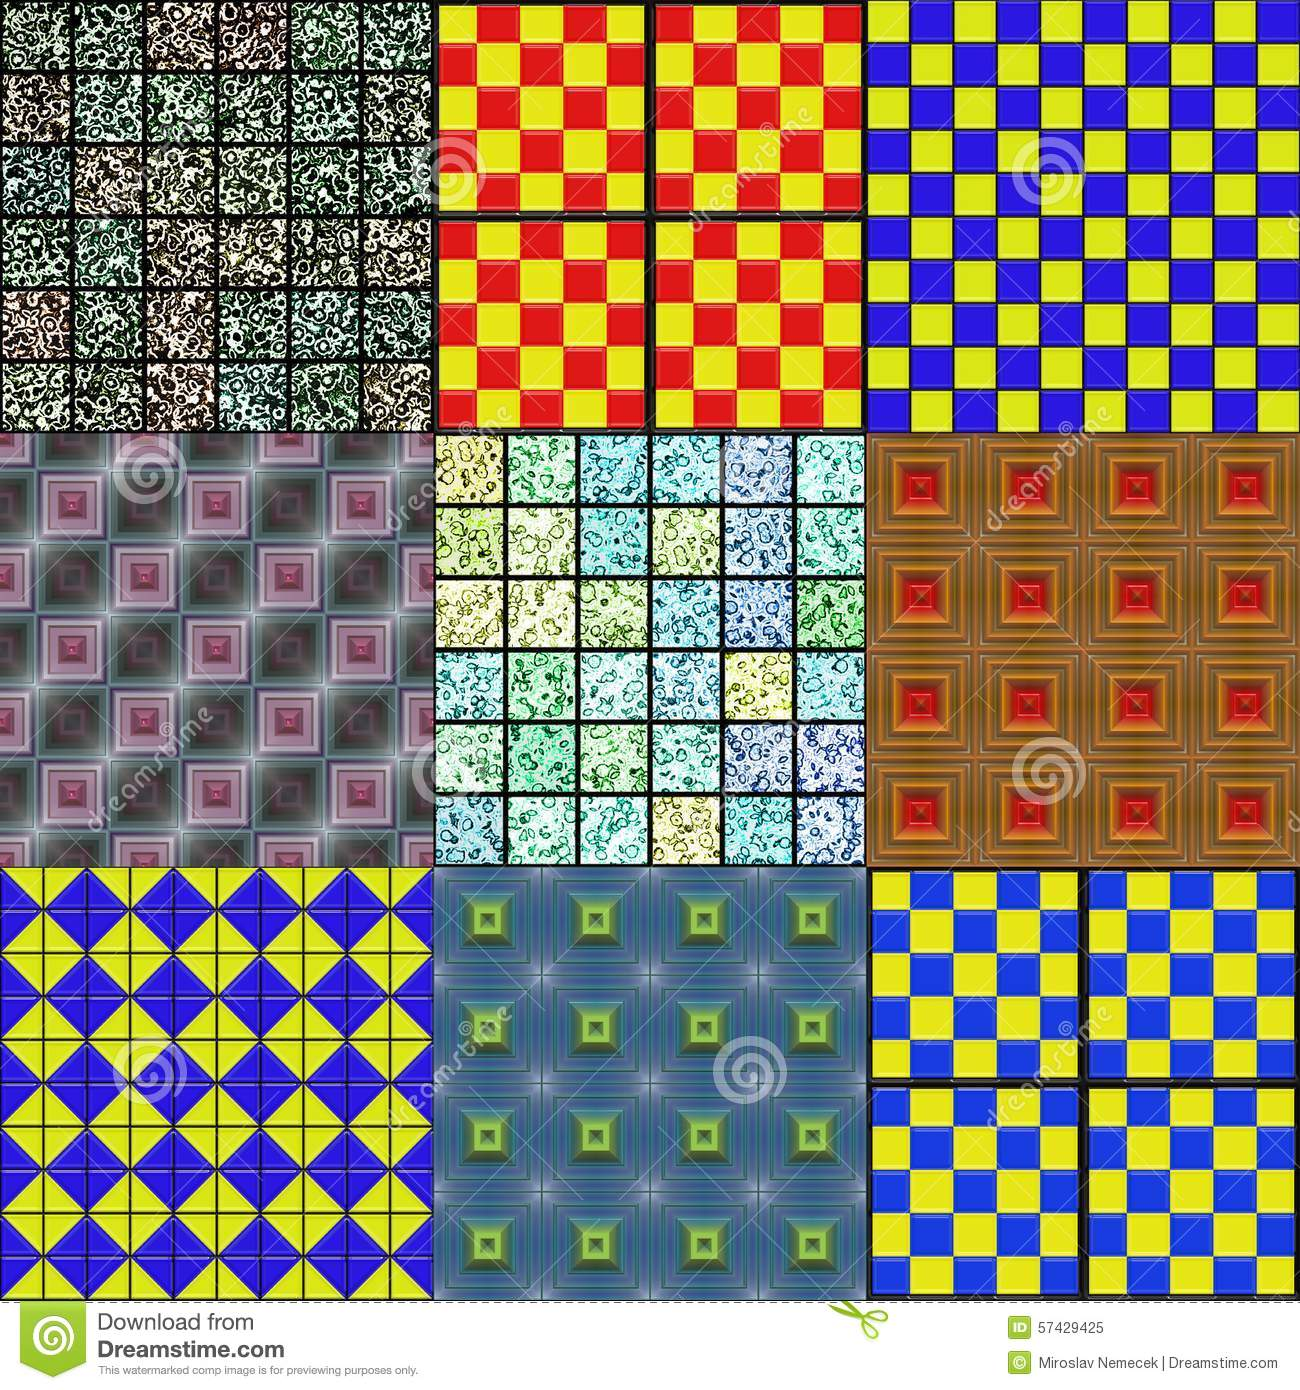 generated seamless tile background - photo #43